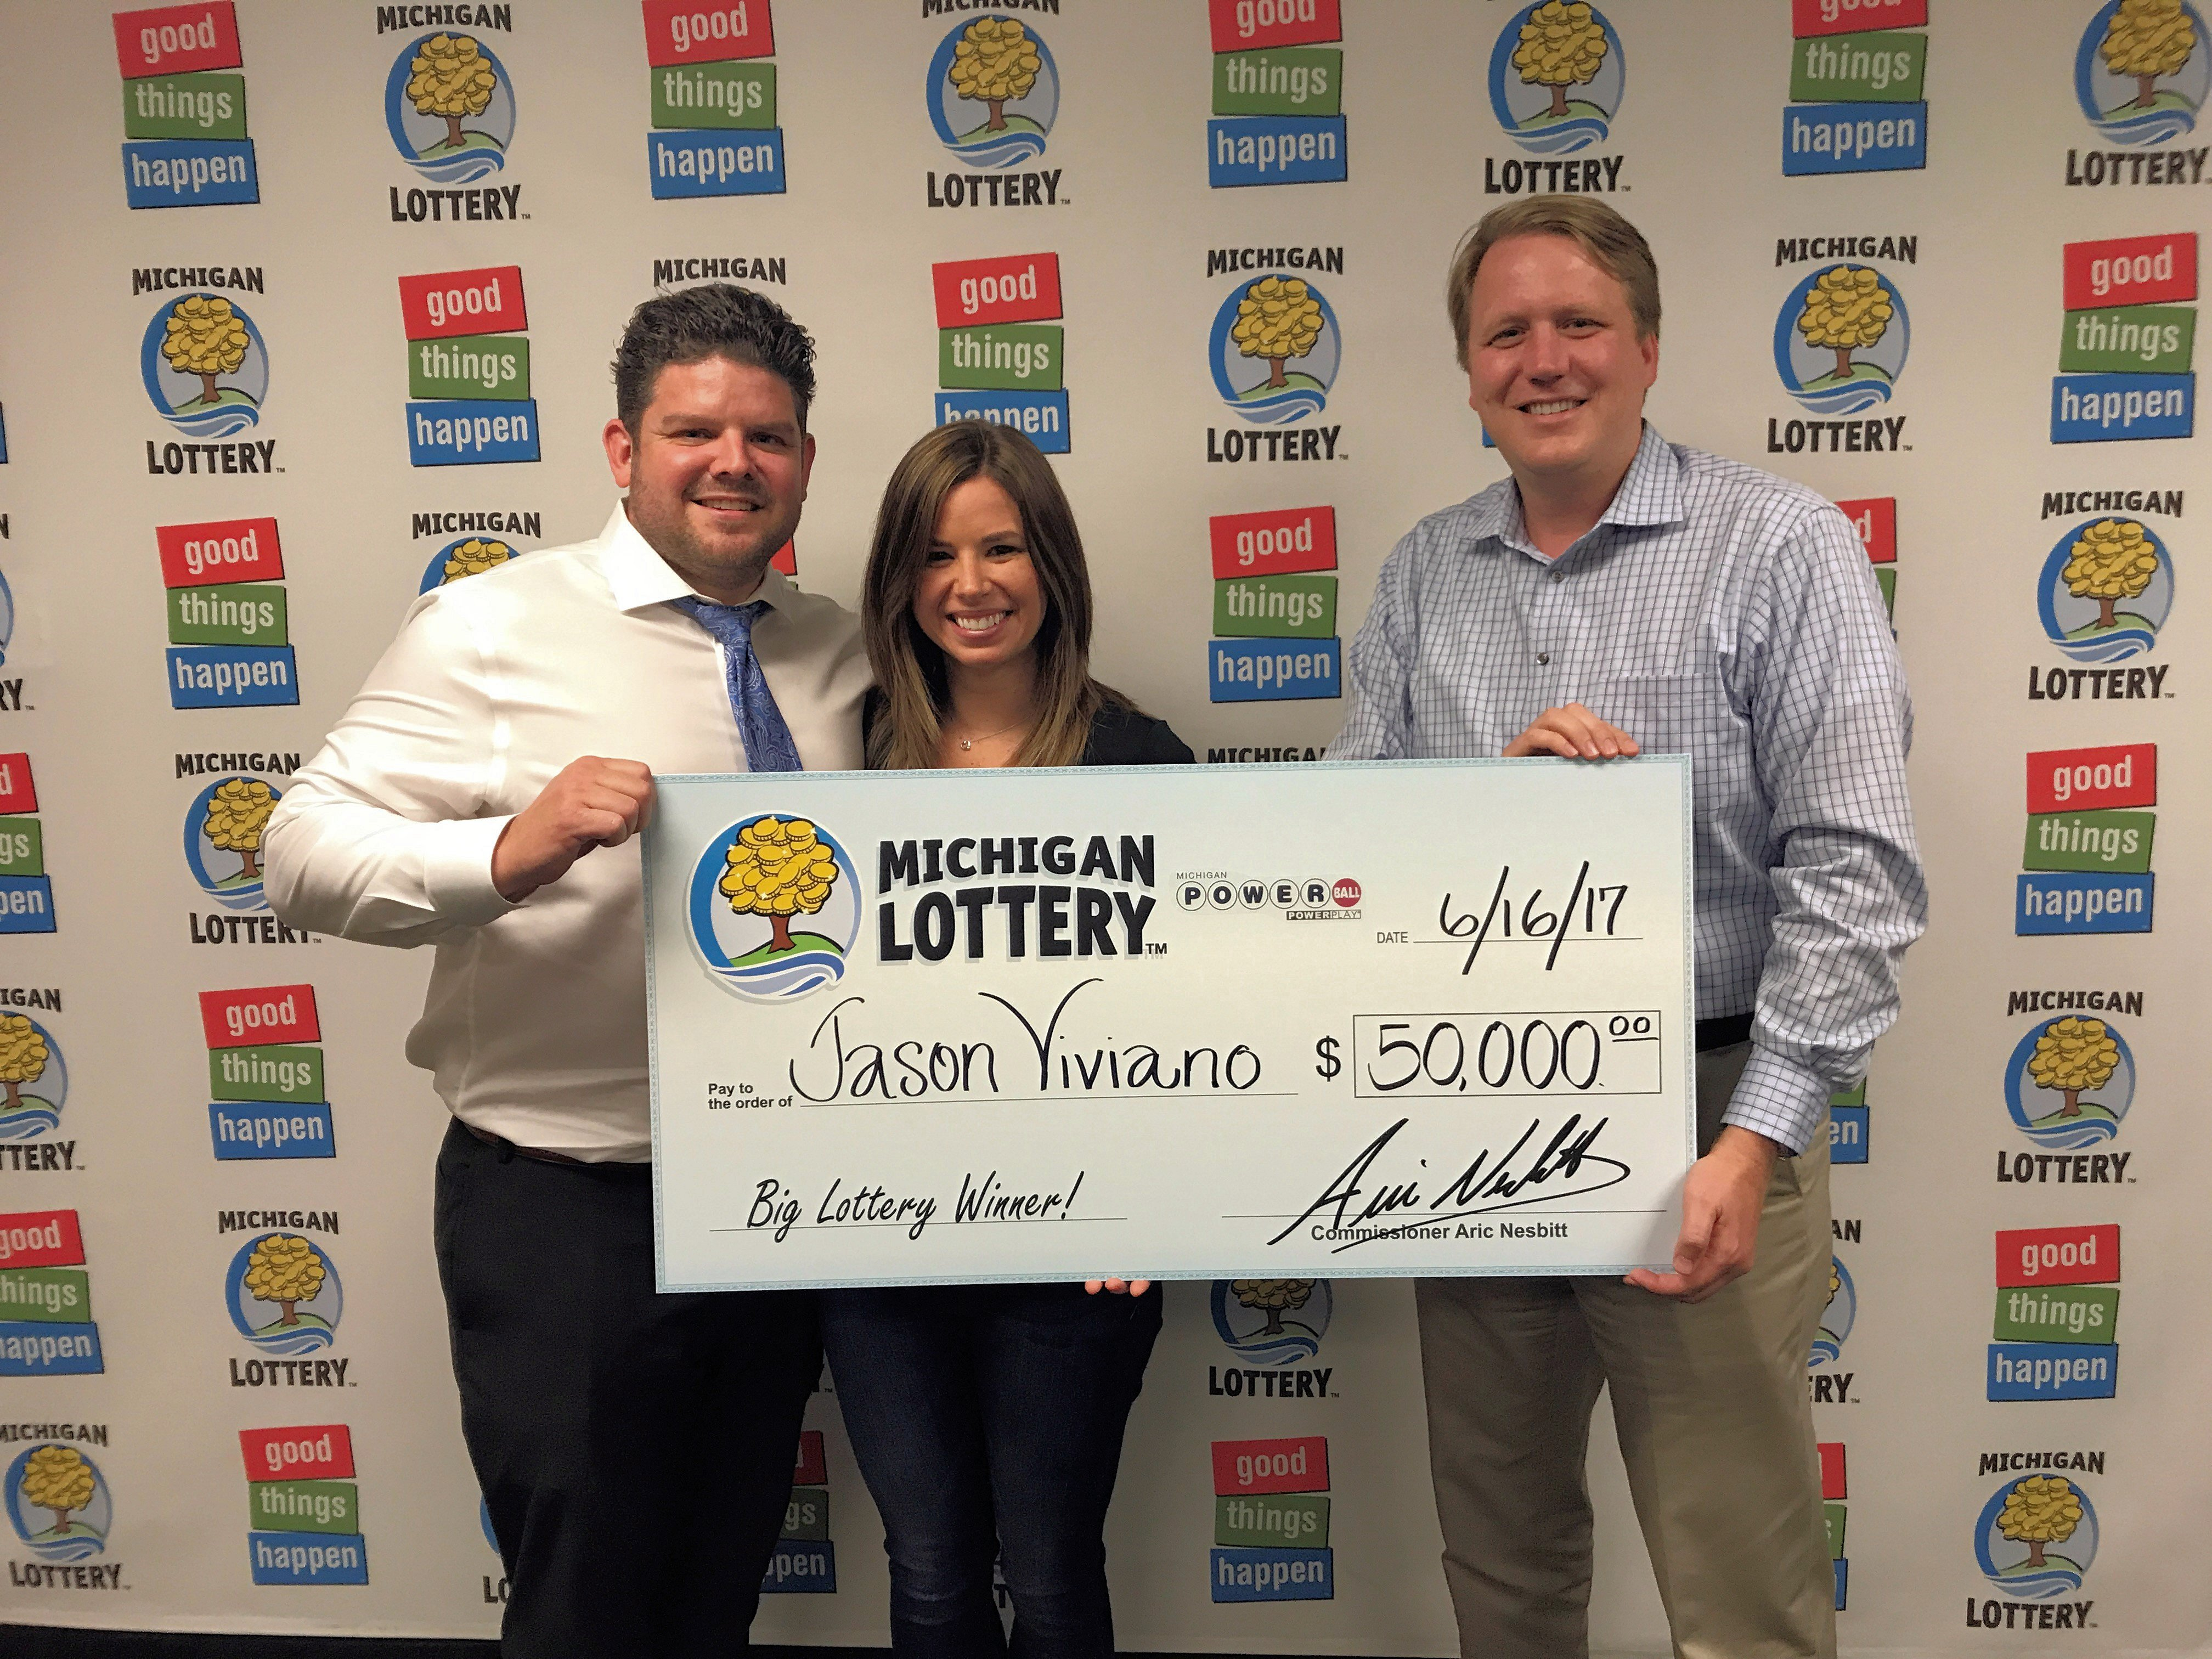 Macomb County Man Wins $50,000 Powerball Prize from the